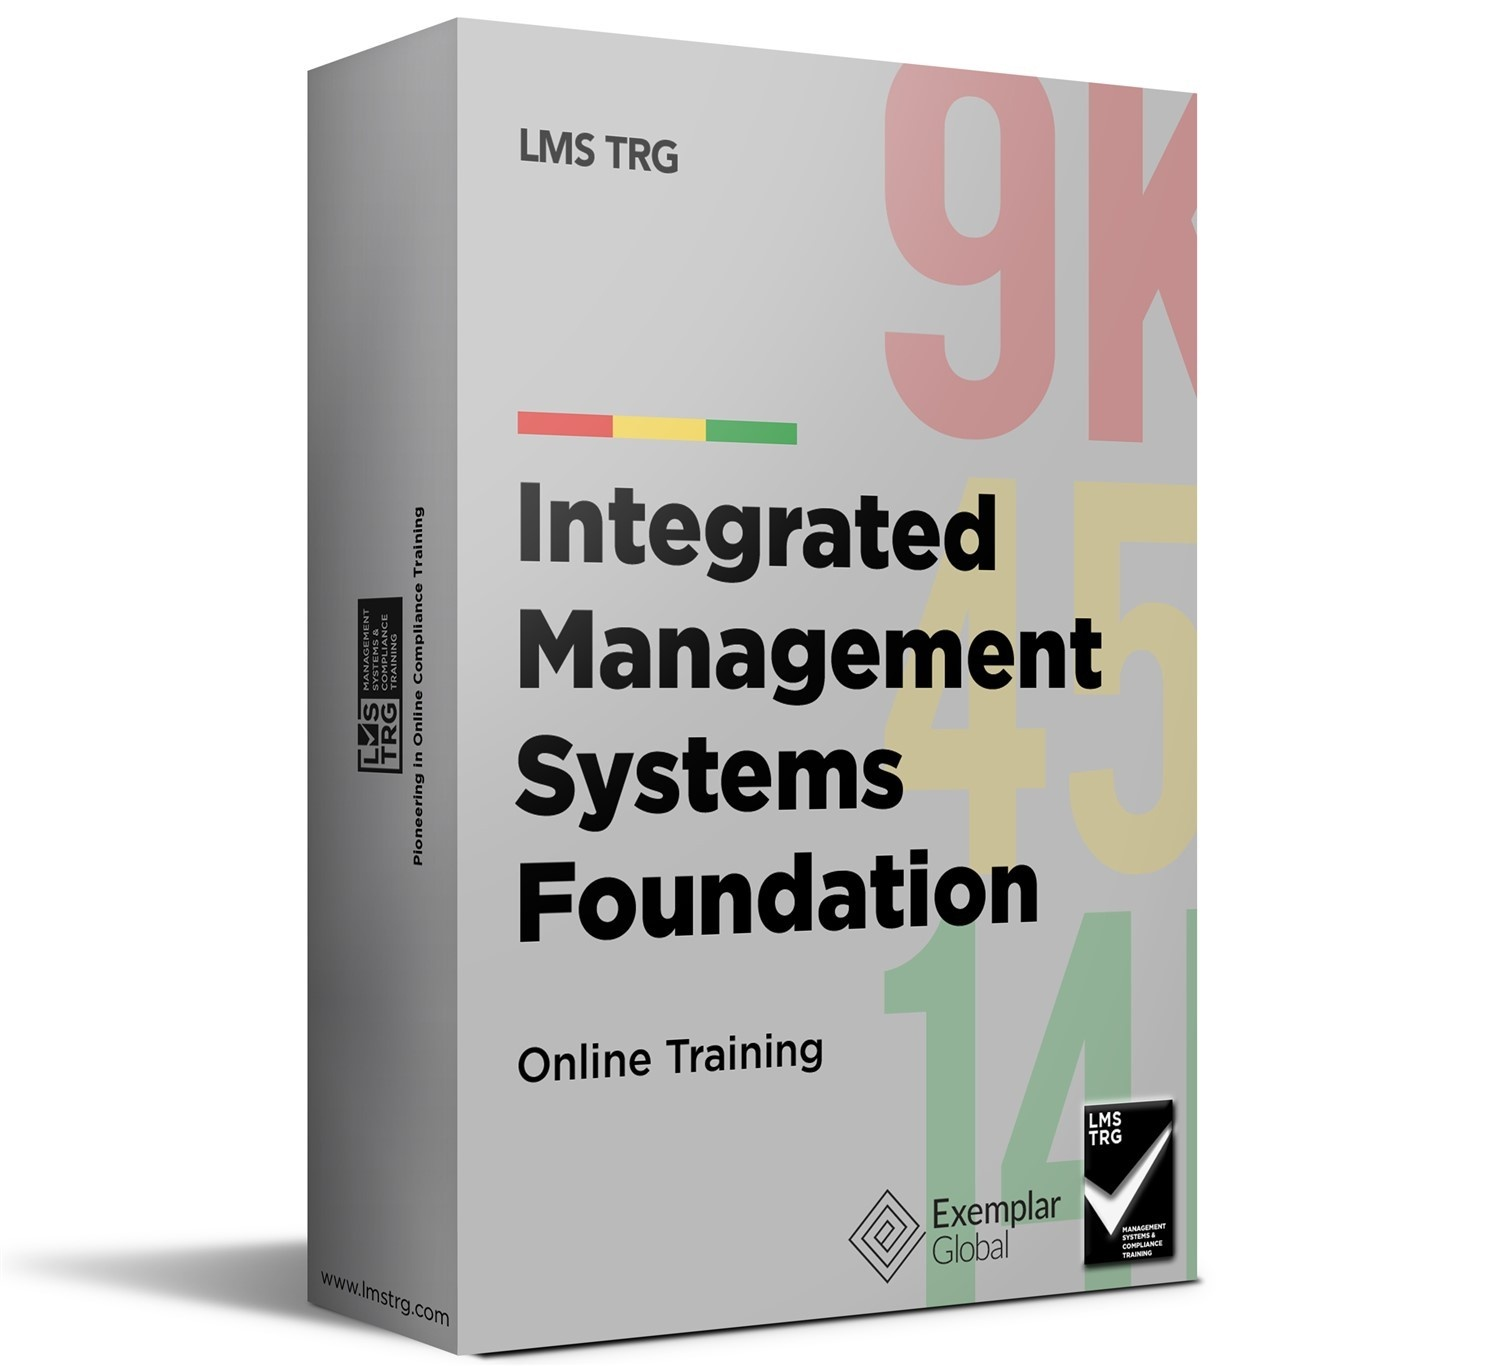 Integrated Management Systems (IMS) Foundation Online Course